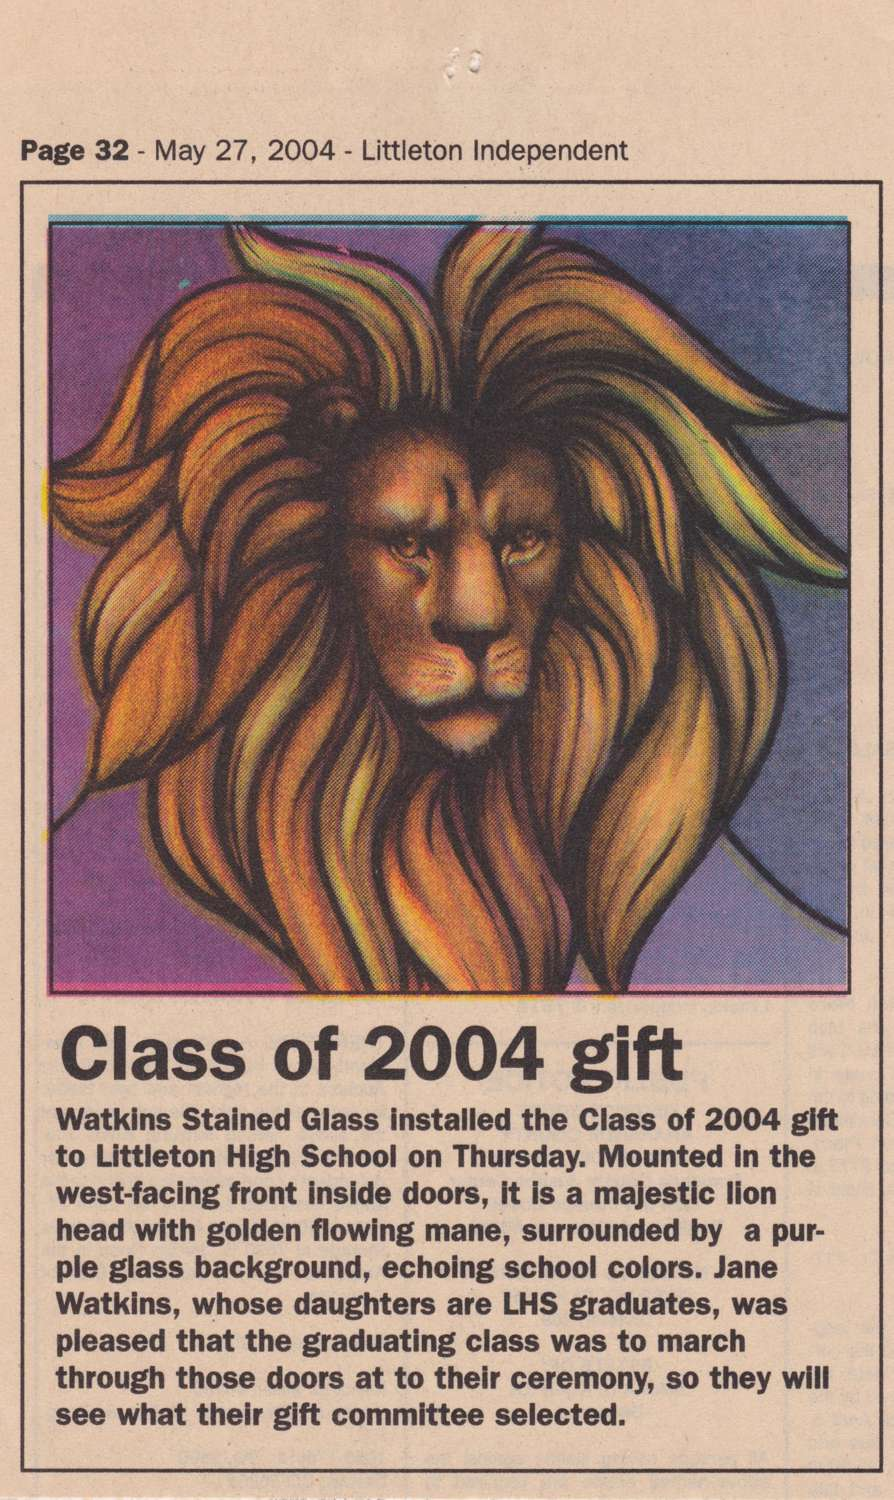 Class of 2004 gift